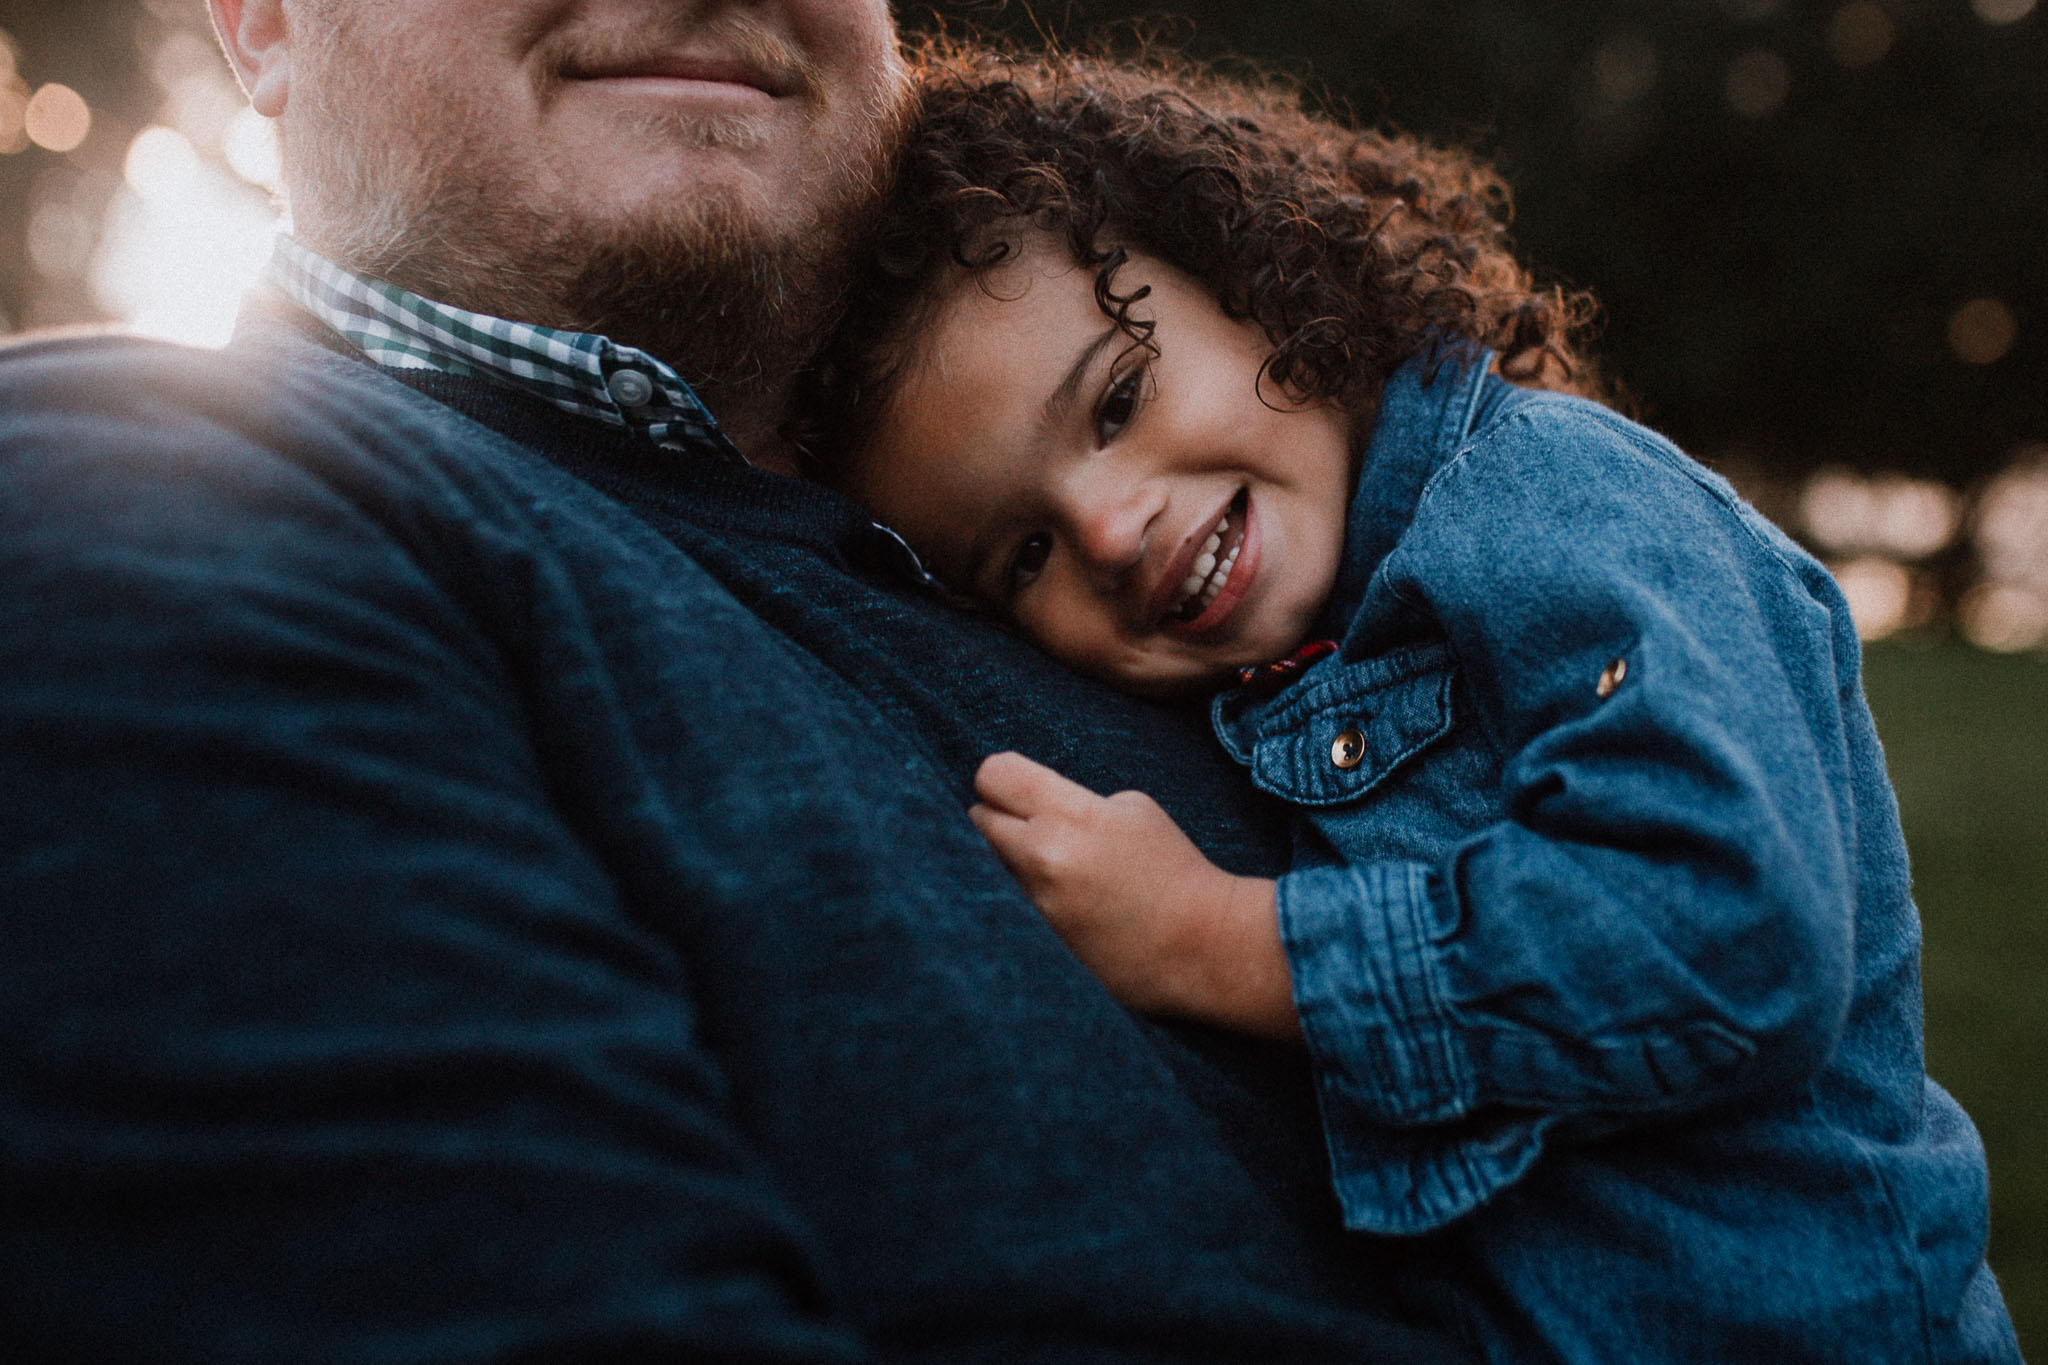 father daughter hug sunset fall autumn Wolf Trap Vienna Virginia Lifestyle Documentary Family Marti Austin Photography